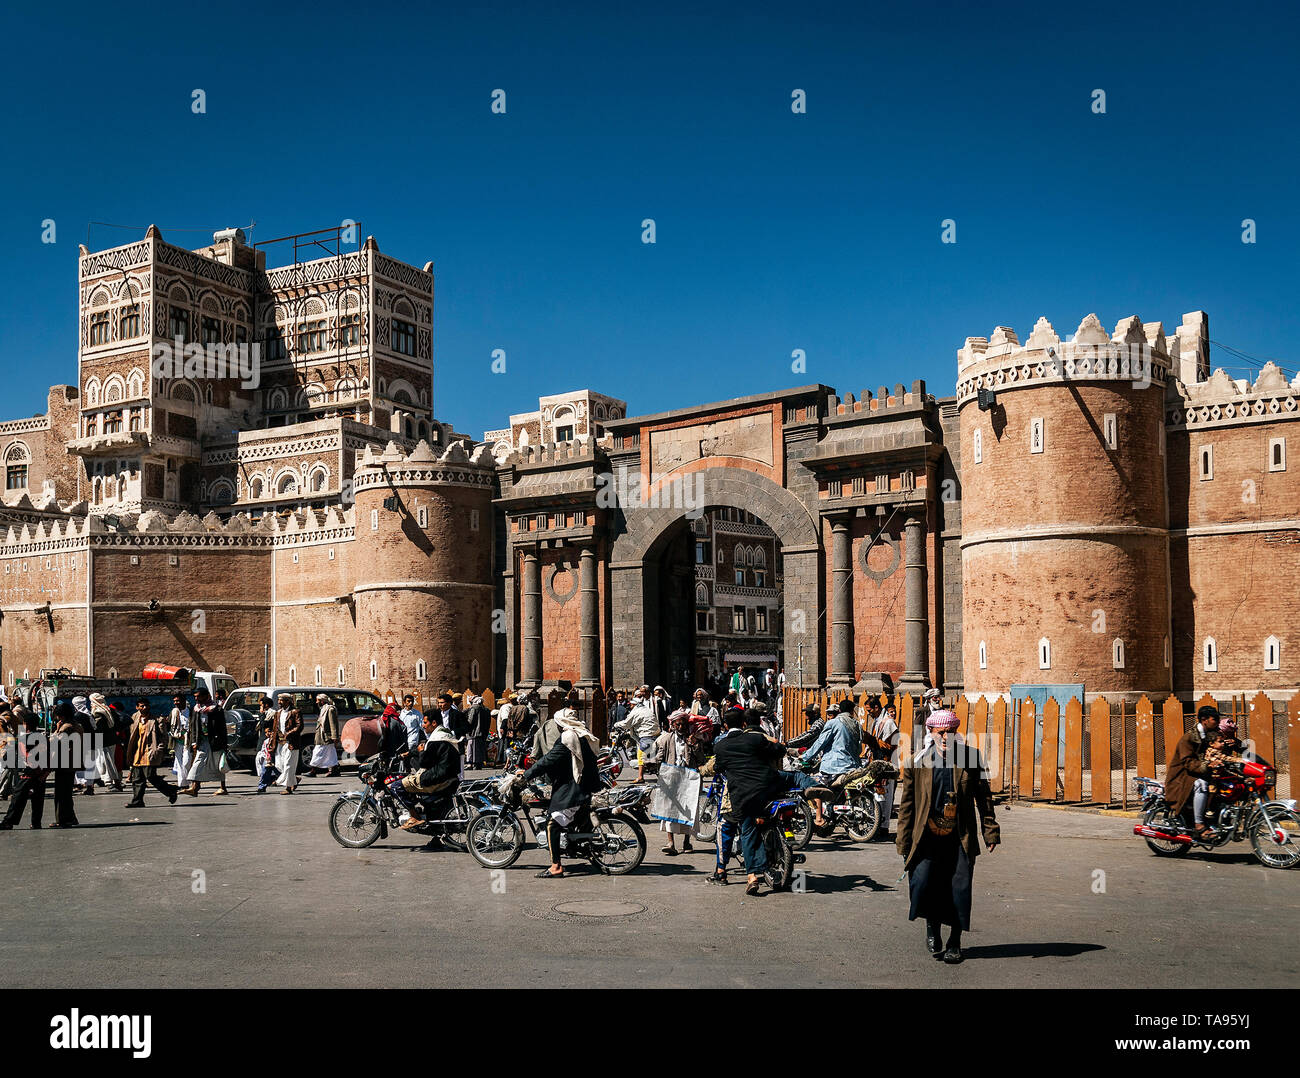 street scene and local heritage architecture buildings in old town of sanaa yemen at Bab Al Yemen gate - Stock Image